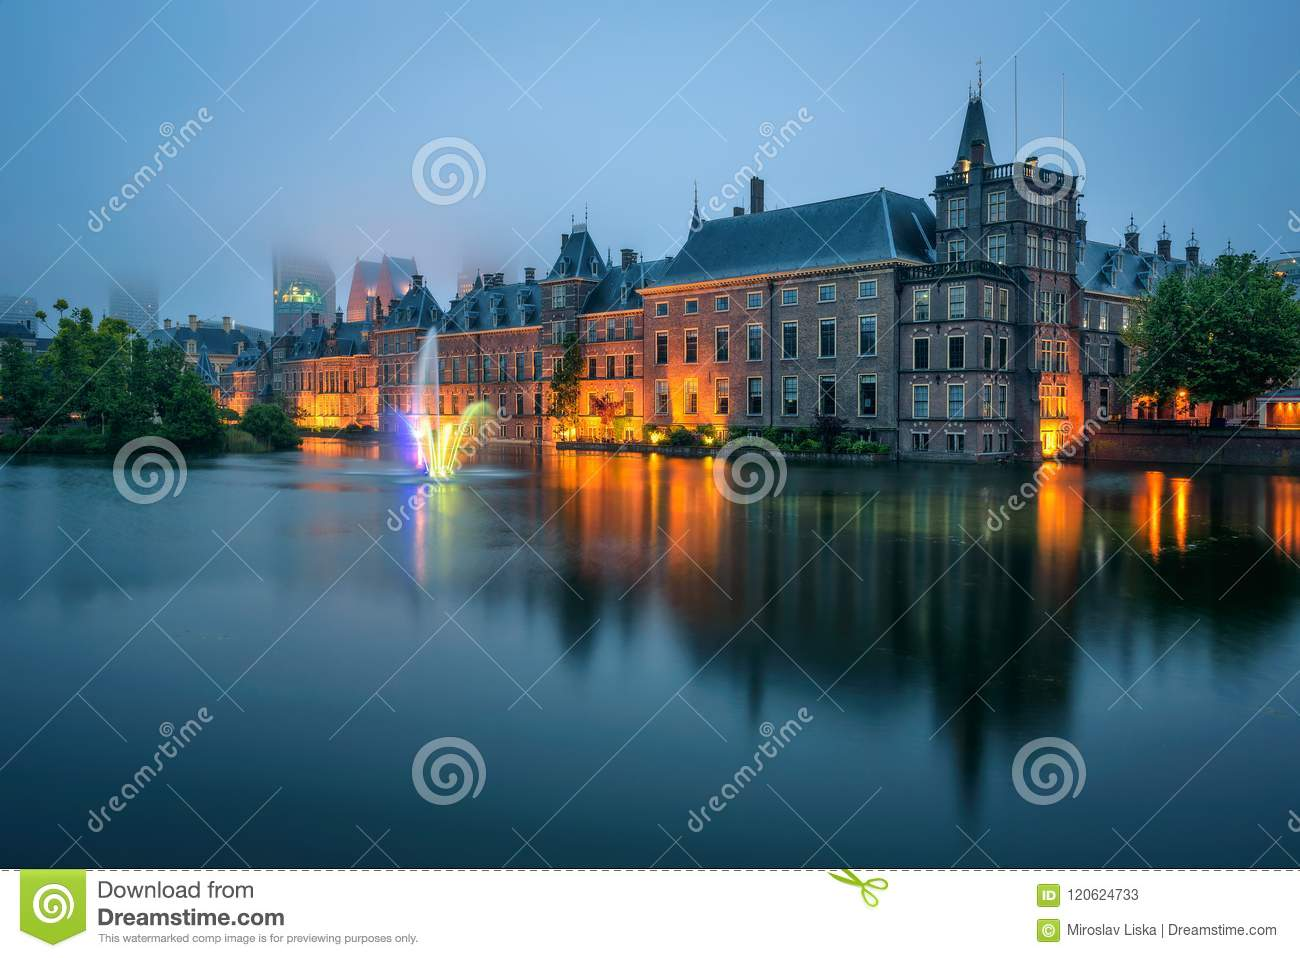 Download The Binnenhof Palace In A Foggy Evening In Hague, Netherlands Stock Image - Image of government, office: 120624733